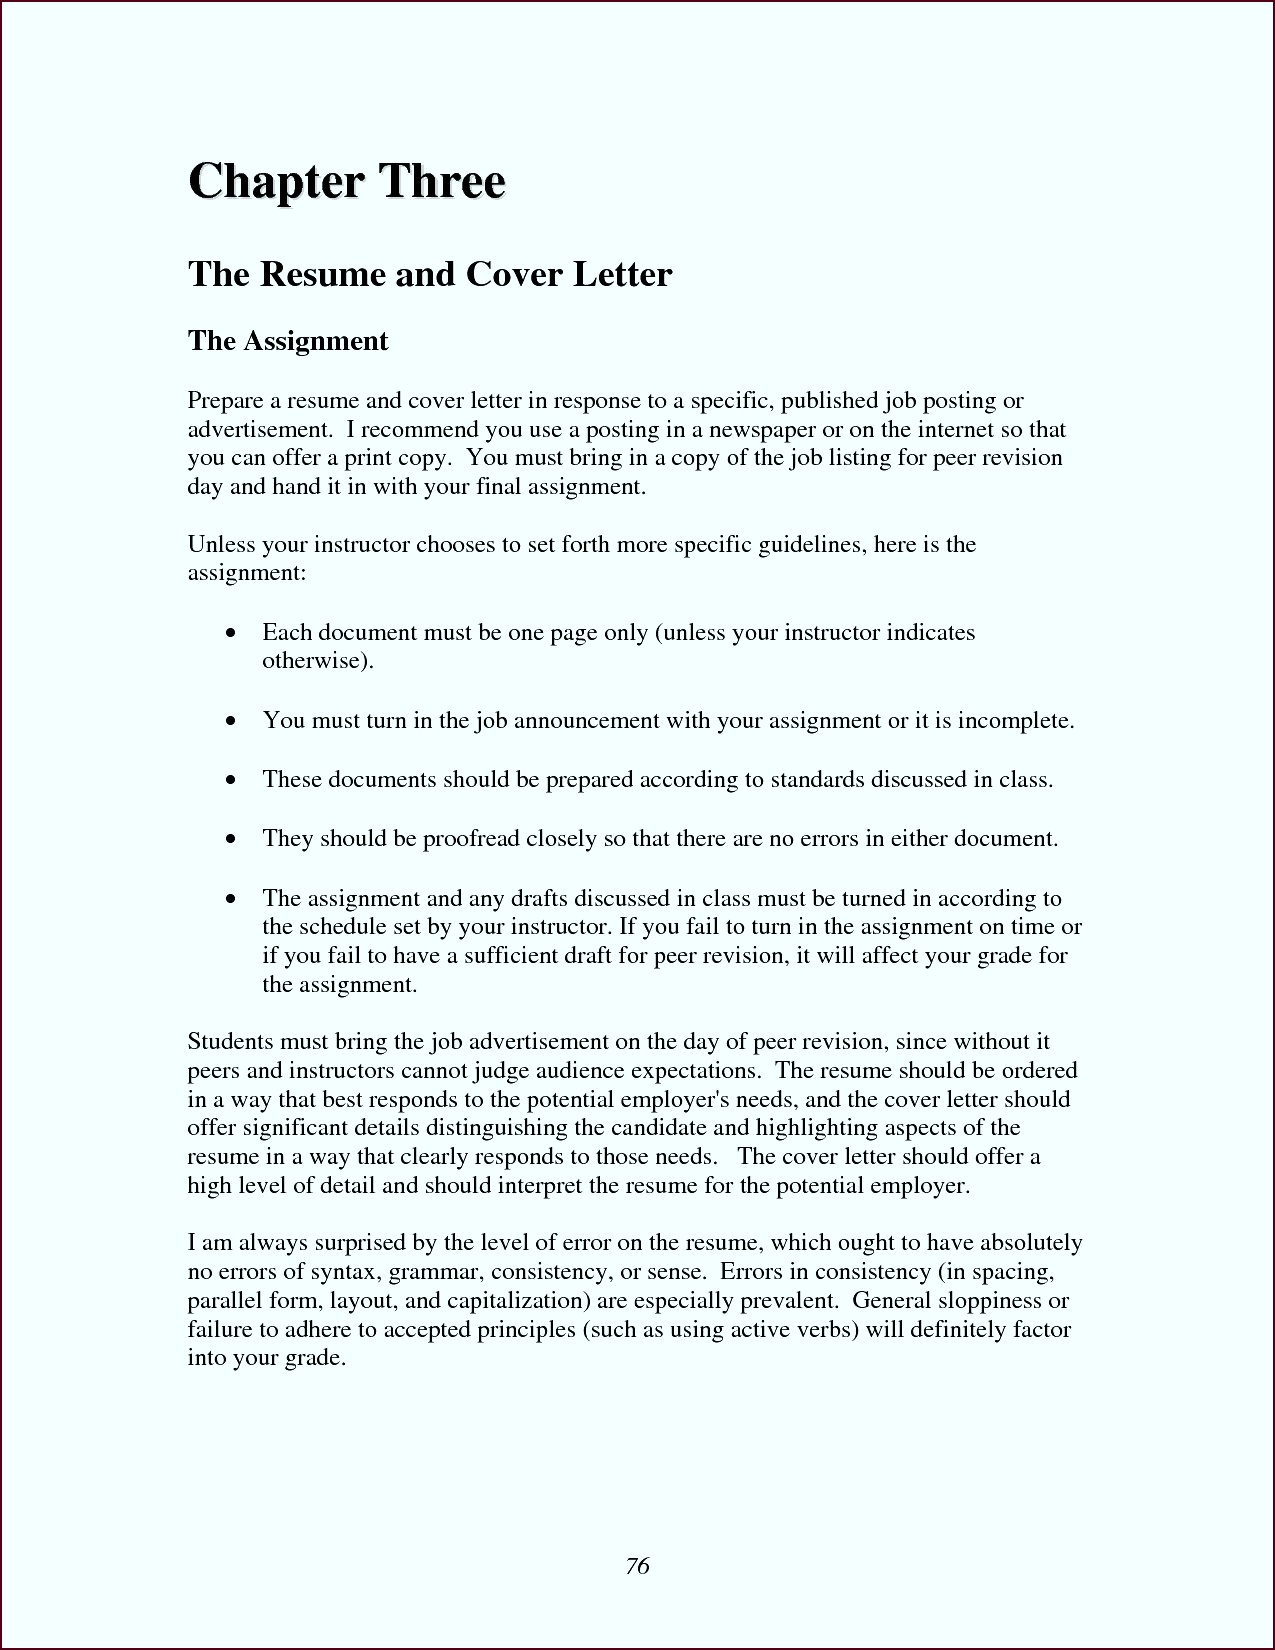 Basic Resignation Letter Samples Chef Resume Template Free Simple Resignation Letter 1 Month Notice eooyy